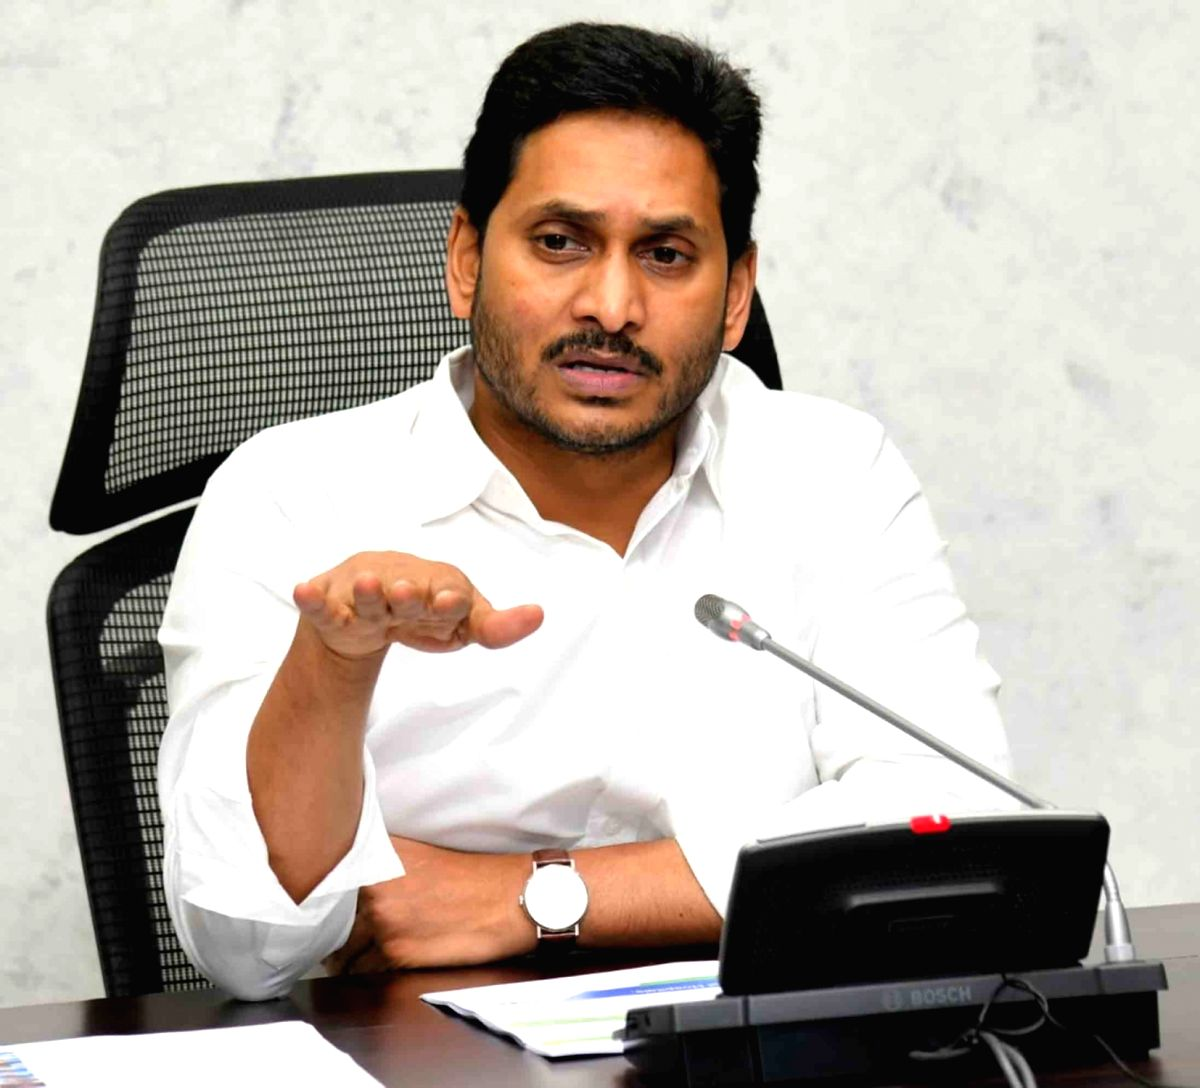 Amaravati, Oct 1 (IANS) Andhra Pradesh Chief Minister Y. S. Jagan Mohan Reddy announced the minimum support price (MSP) for 24 agricultural products for the year 2020-21 on Thursday.